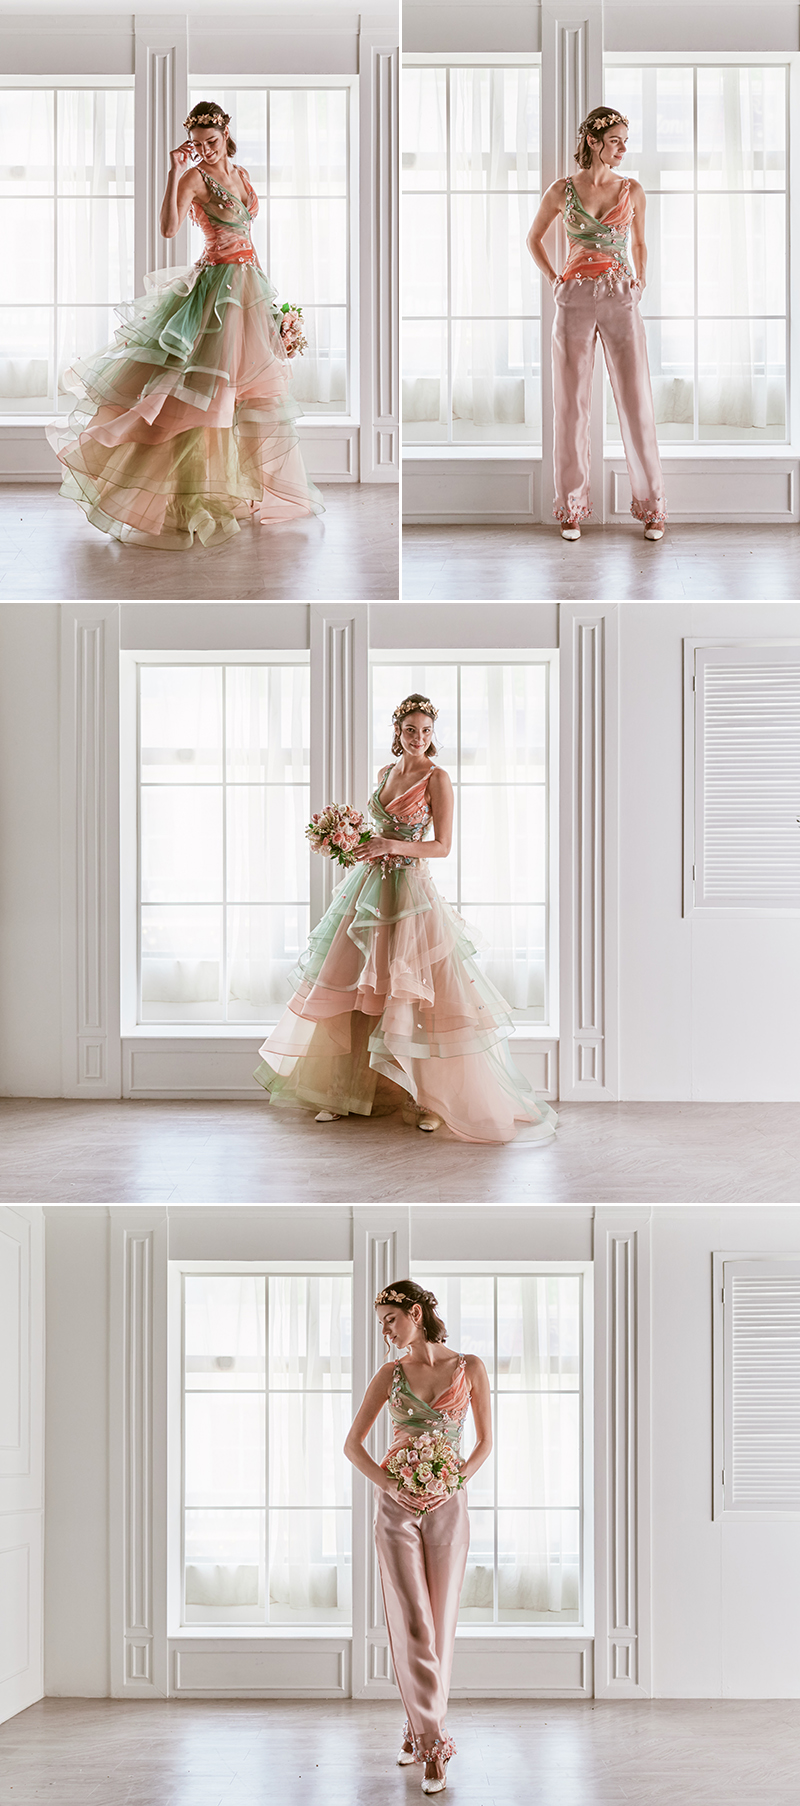 One Dress Many Looks Emcee Bridal Bymeichi 2019 Multi Wear Convertible Gowns For Modern Brides Praise Wedding